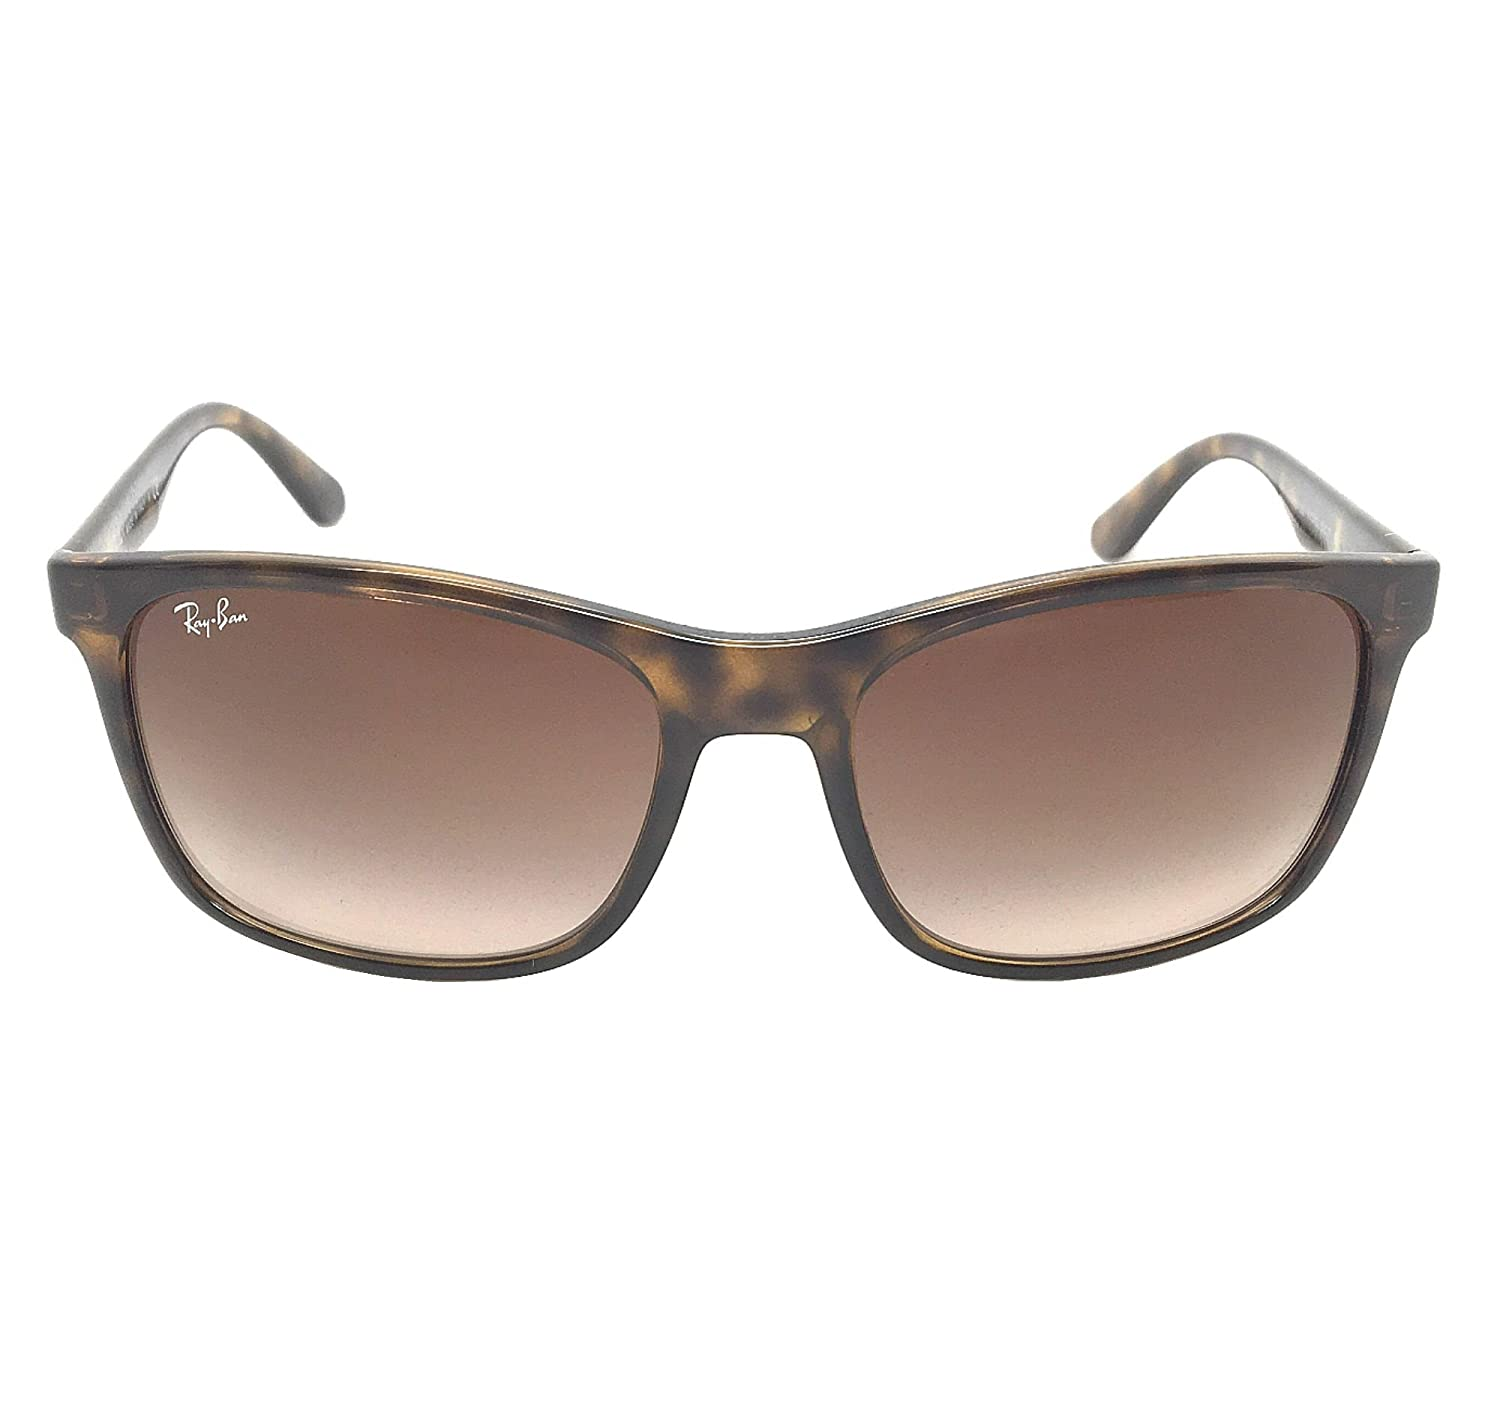 acce9e6c8f New Ray Ban RB4232 710 13 Havana Brown Gradient 57mm Sunglasses   Amazon.co.uk  Clothing